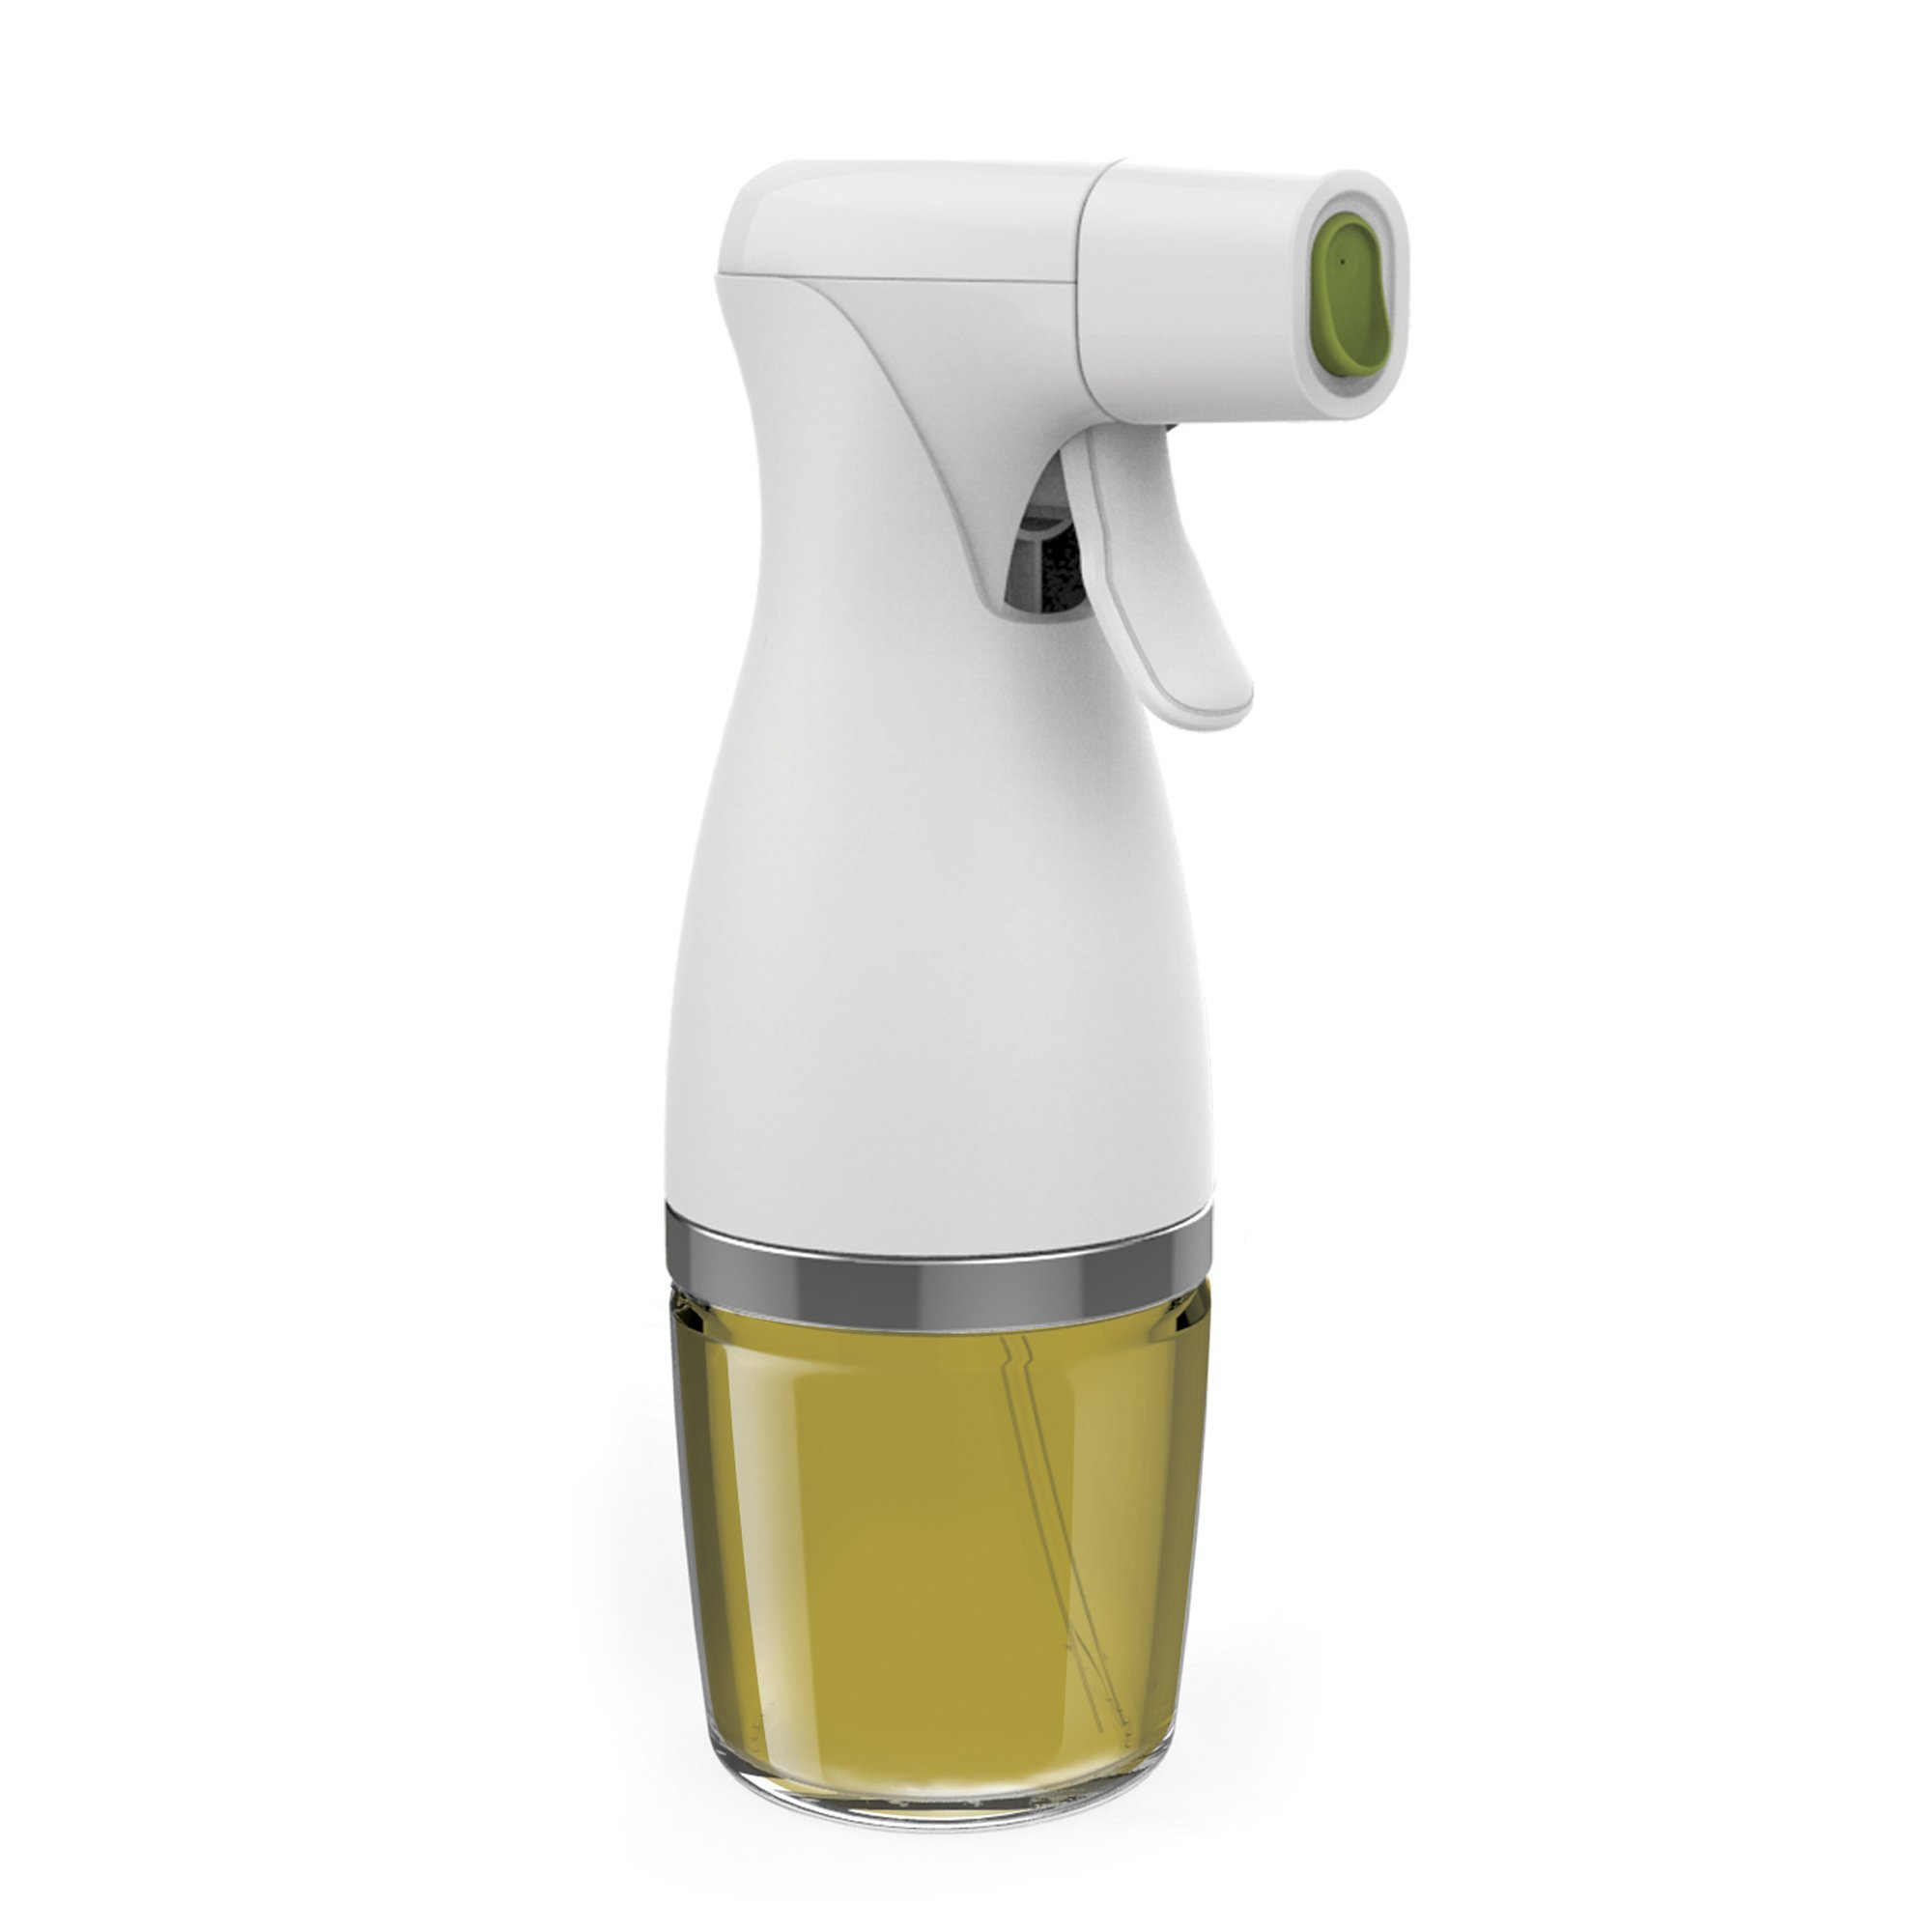 Prepara 2016 for for Kitchen and Grill, Simply Mist, Glass Healthy Eating Trigger Oil Sprayer, one size, White by Prepara